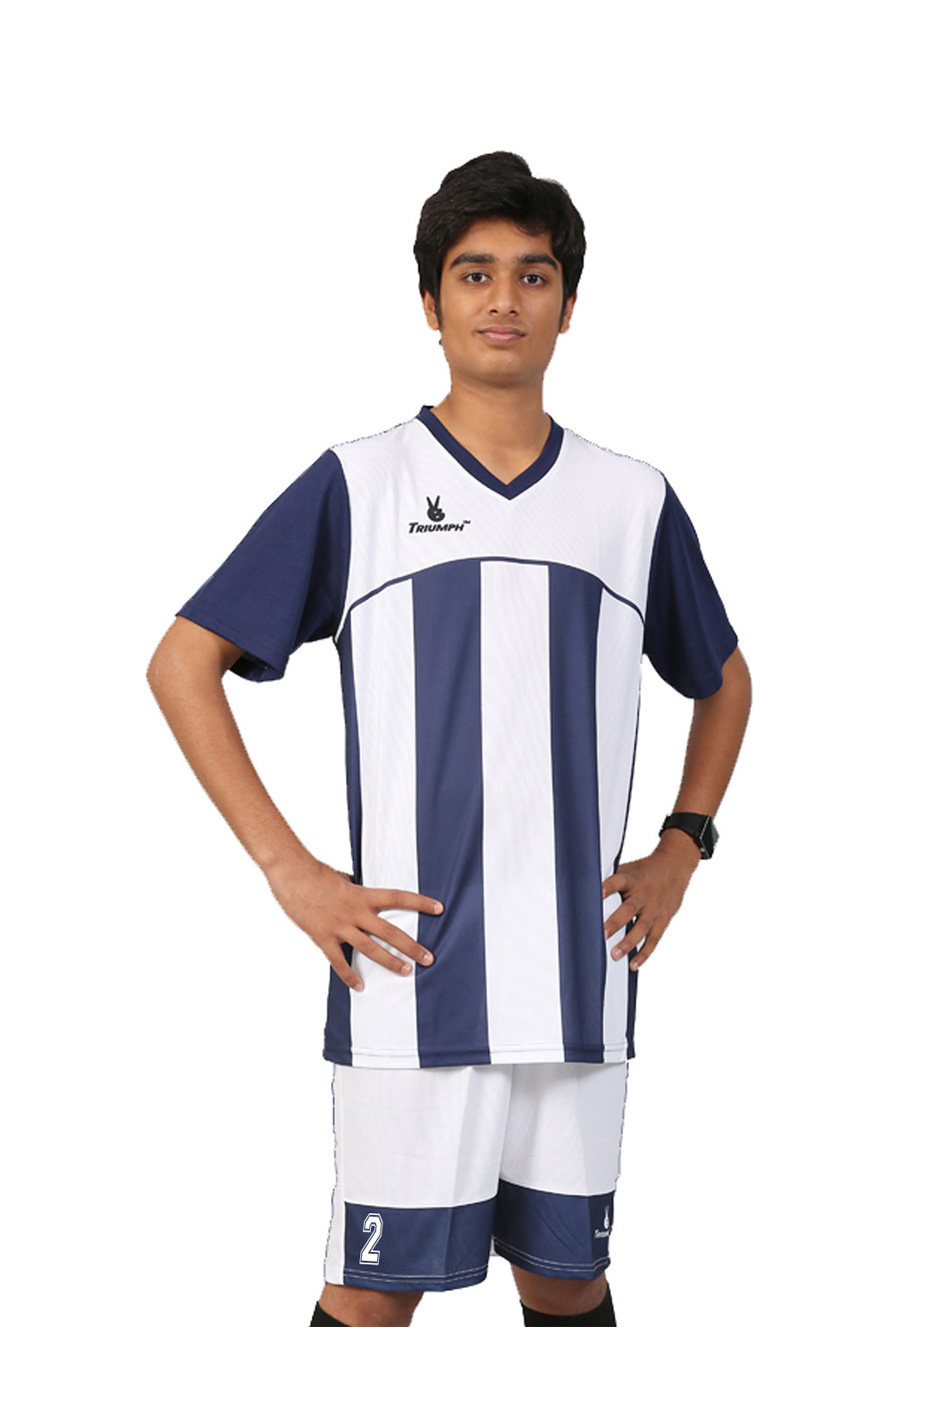 05a2e748a Soccer garments for man ₹849.00. Soccer team uniform ₹849.00